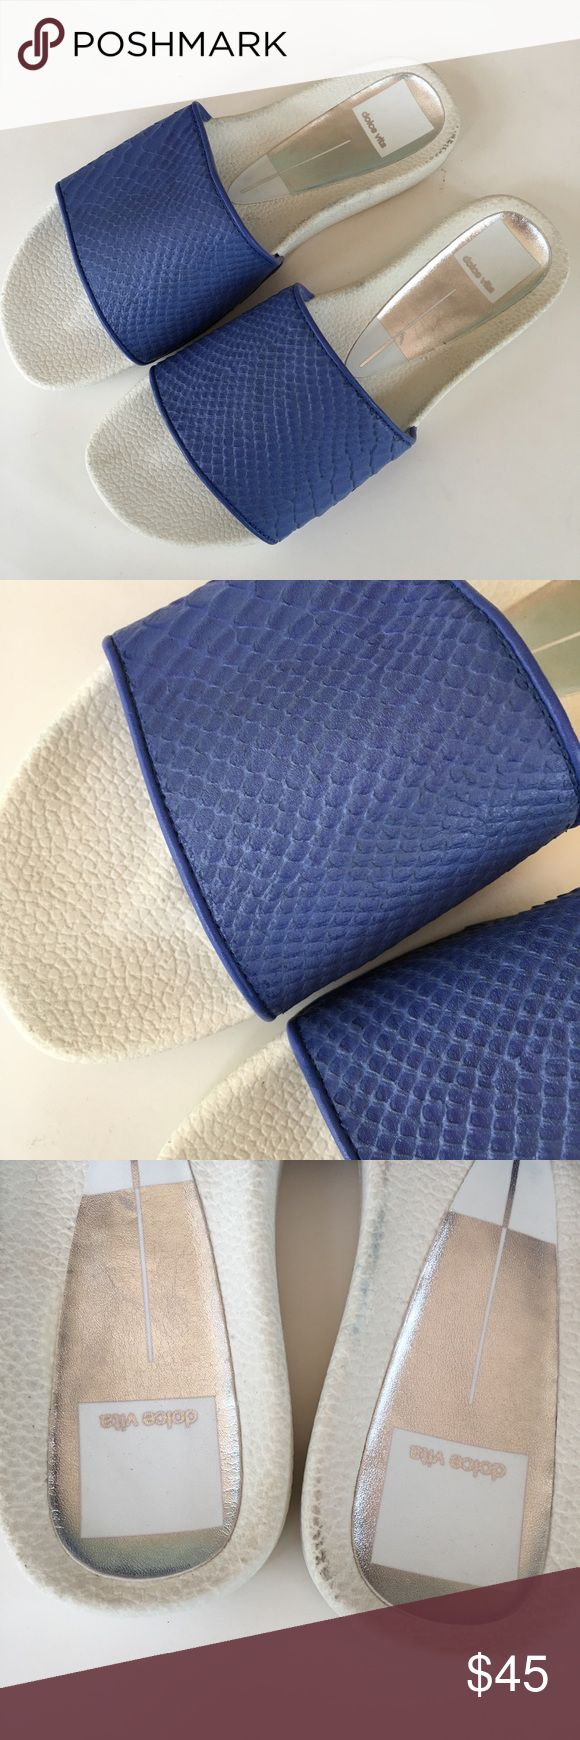 """NEW DOLCE VITA sport comfort slide sandal blue 6.5 New with tags in box. Embossed leather upper, textile lining, manmade balance. Insole measures 9.5"""" long and 3.5"""" wide shoes have some box wear and from having been tried on at the shoe store. Please visit my closet for over 800 new w tags items from all categories, many styles and sizes. Great bundling opportunities!!! Retail $109 Dolce Vita Shoes Sandals"""